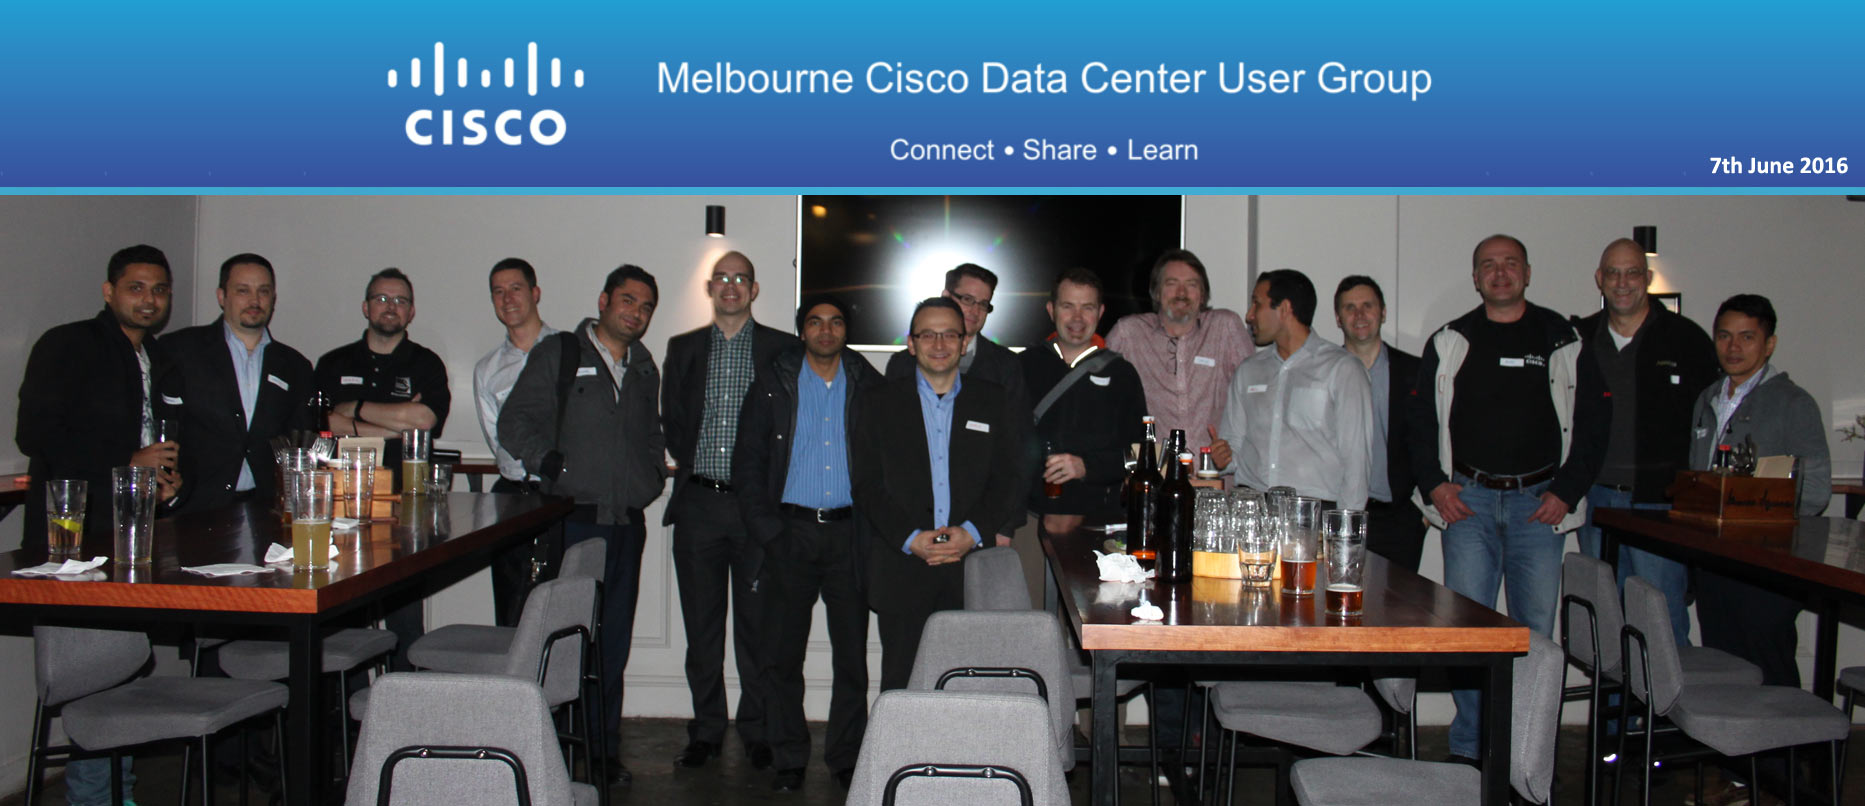 Cisco DCUG Melbourne Members photo